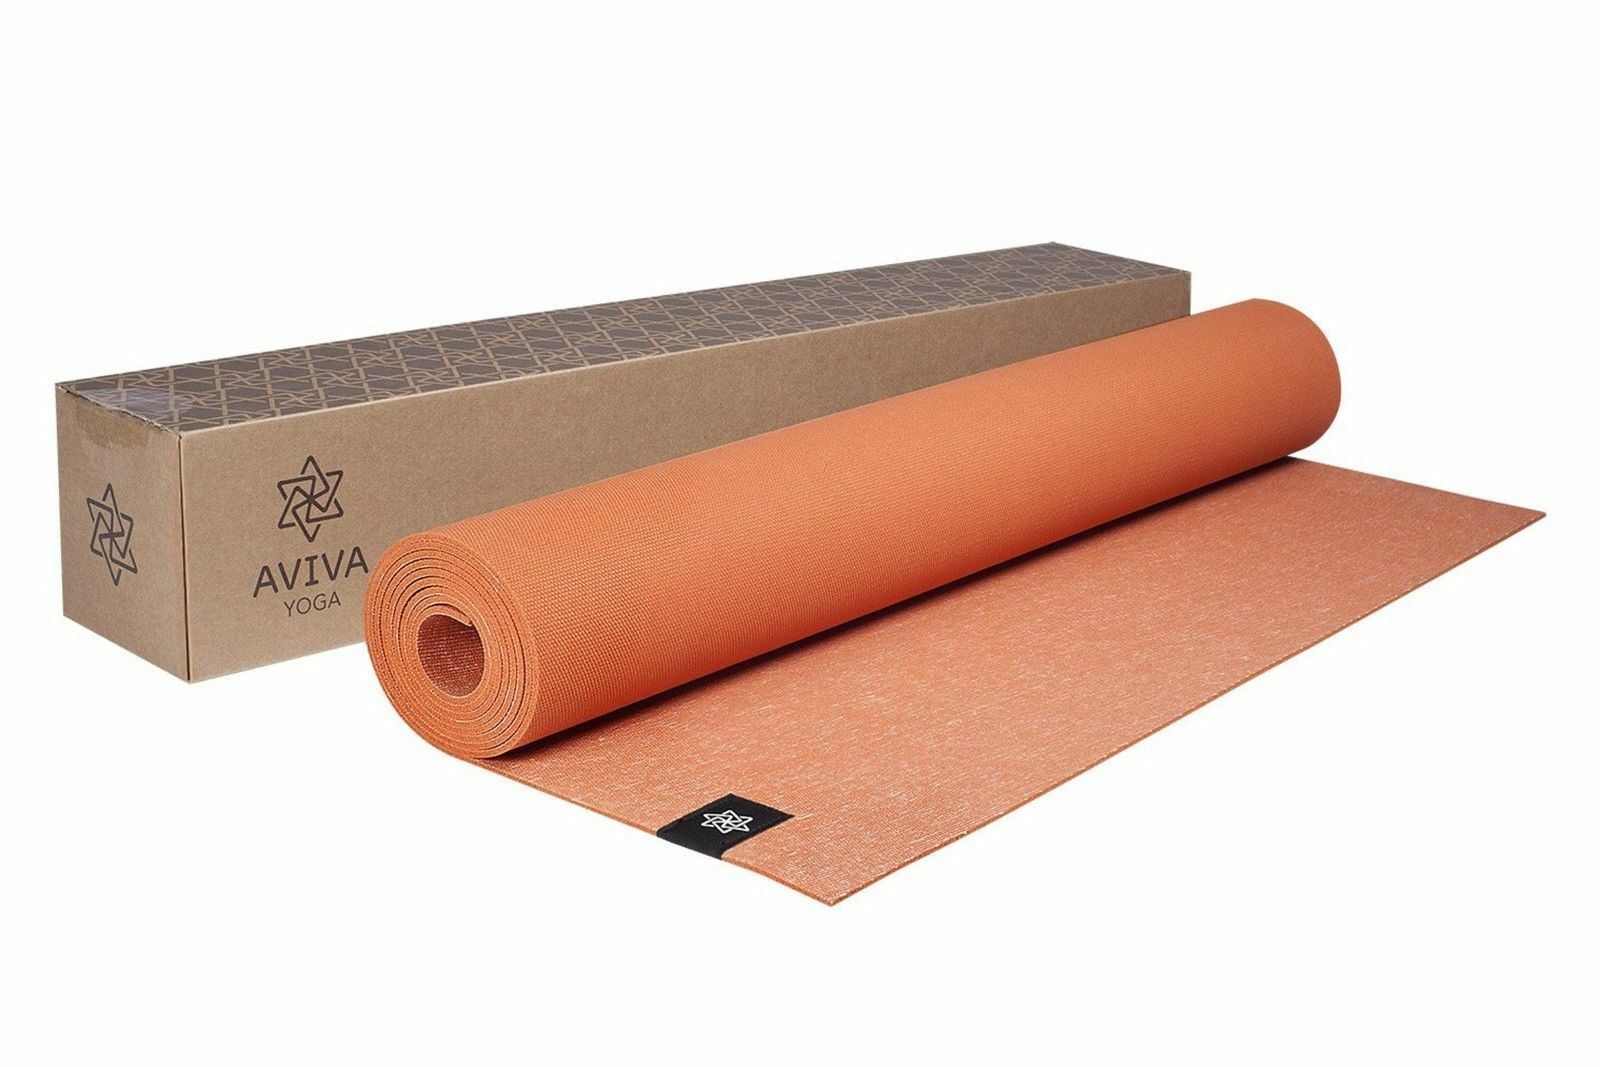 Yomad Pro 3mm Natural Rubber Travel Yoga Mat by AVIVA YOGA ...